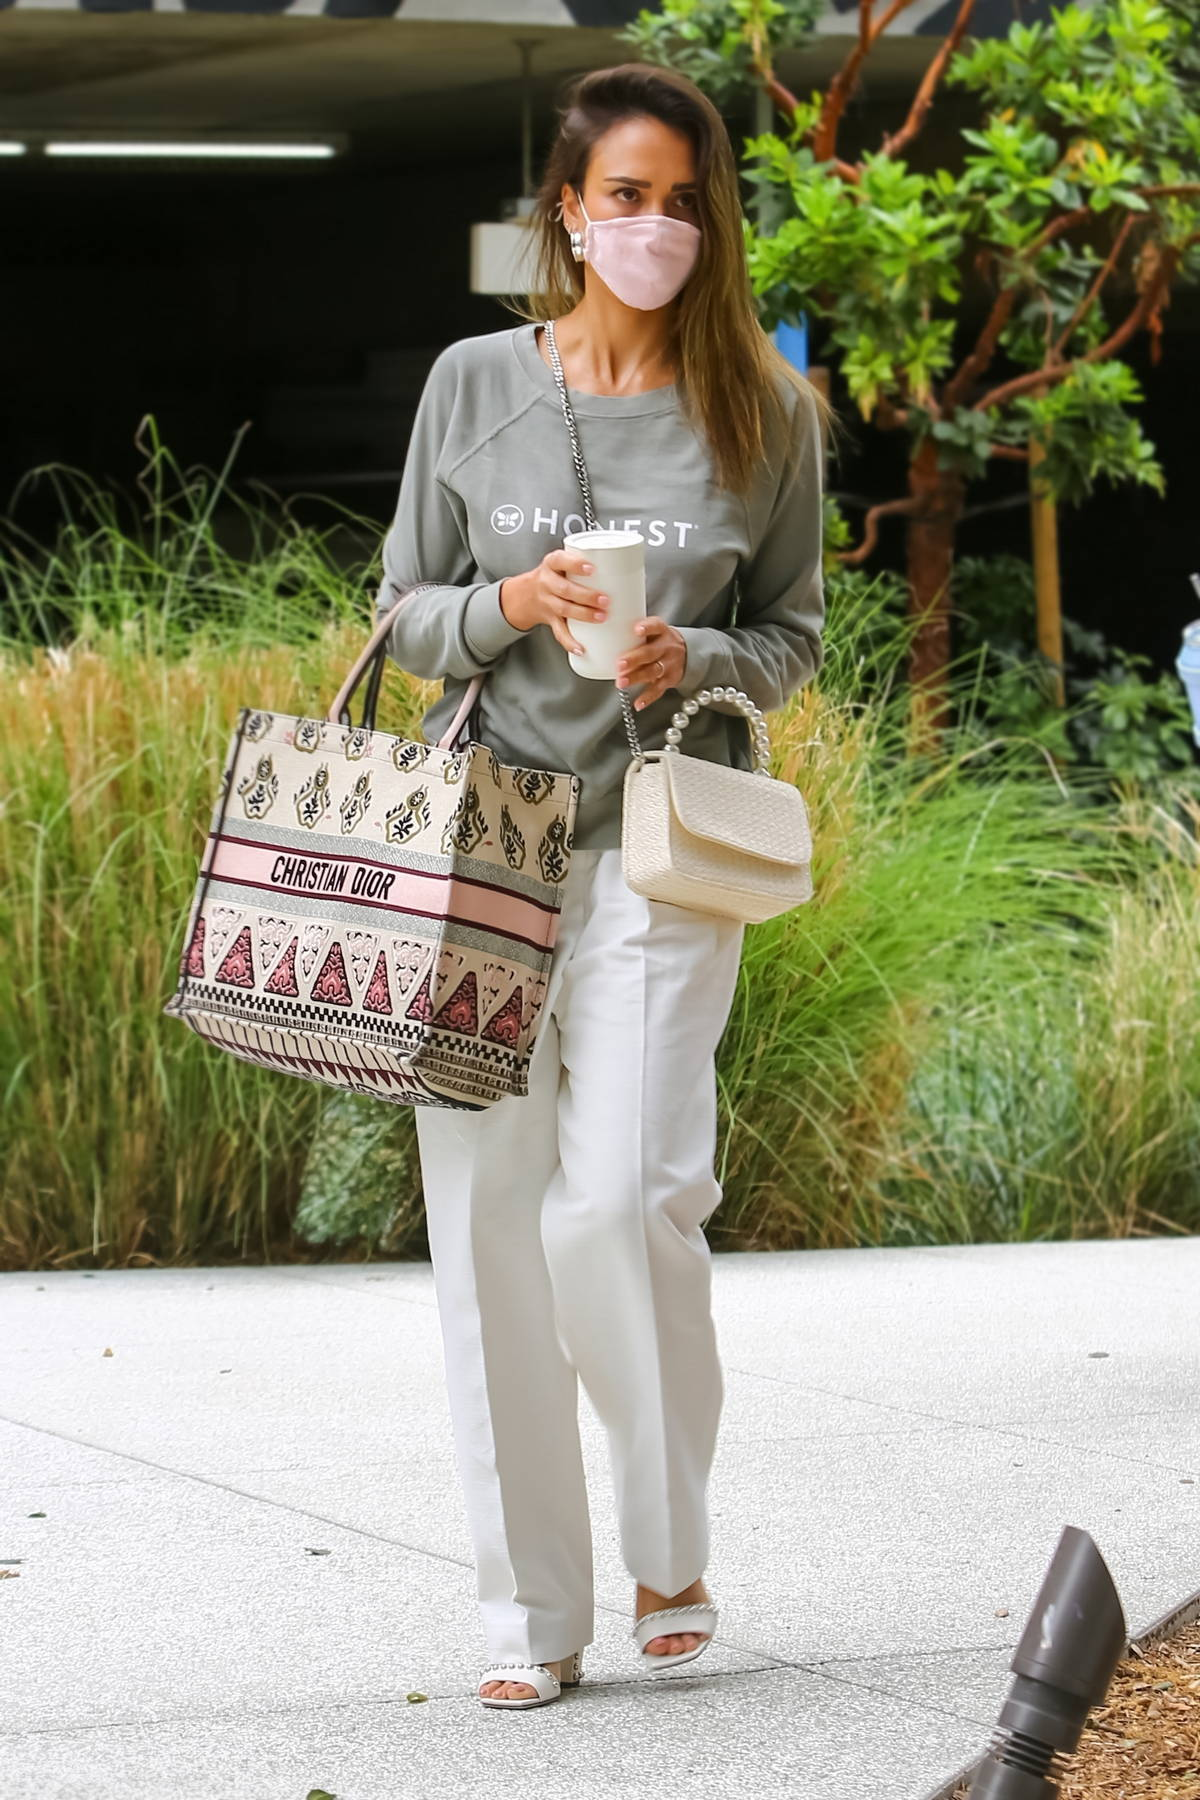 Jessica Alba arrives at her office wearing an Honest sweatshirt in Playa Vista, California